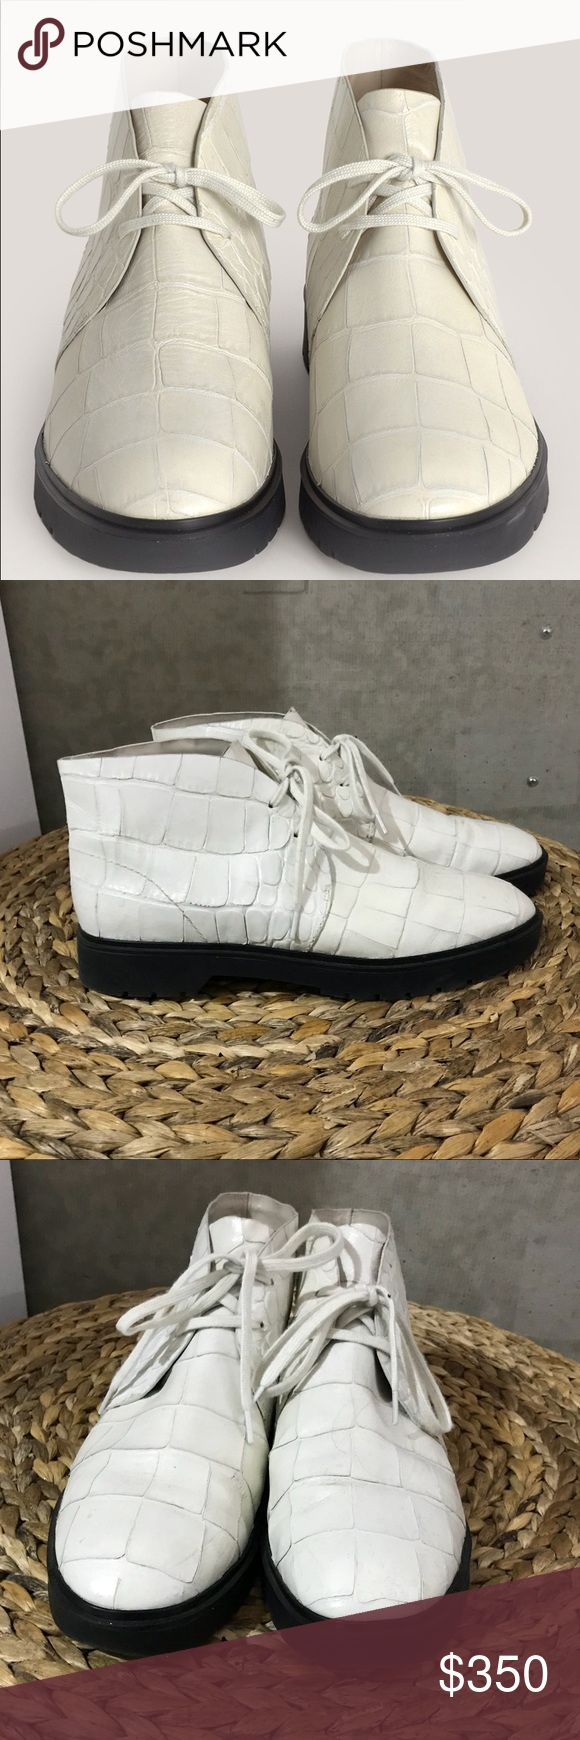 Alexander Wang Ivory Croc Leather Lee Chukka Boots Women's White Ivory Croc Embossed Leather Lee Chukka Boots. Gently worn a handful of times, in excellent condition. Alexander Wang Shoes Ankle Boots & Booties